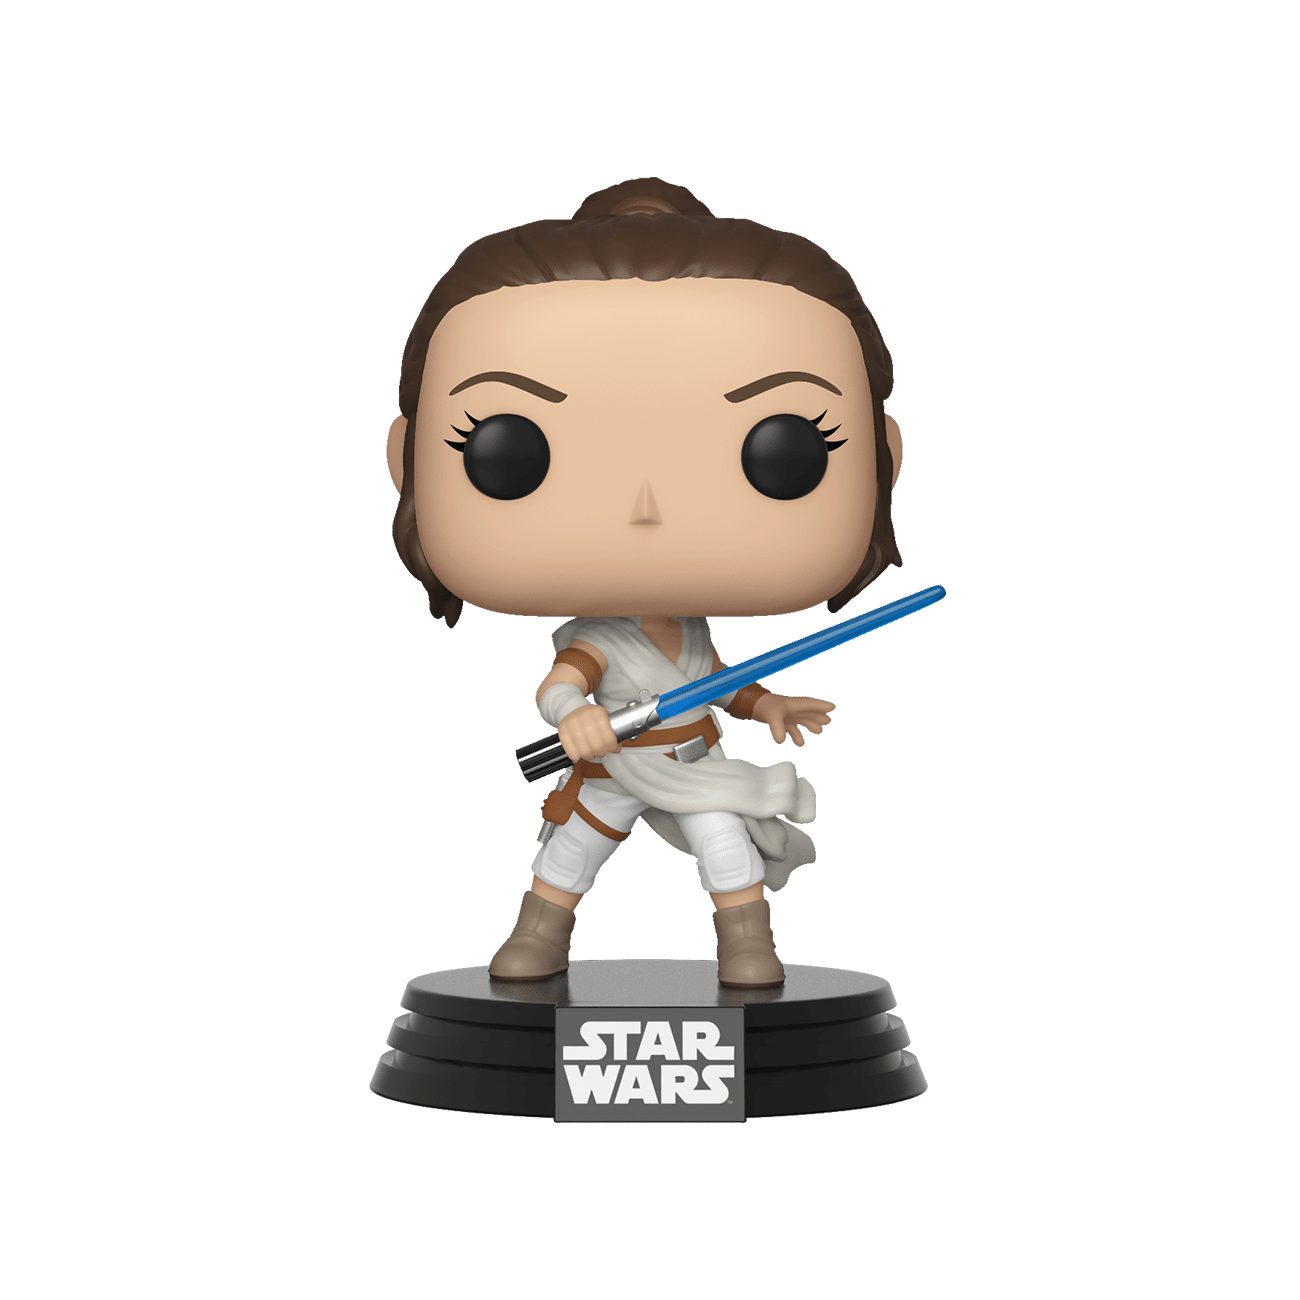 Funko Pop! Star Wars: Rise of Skywalker - Rey